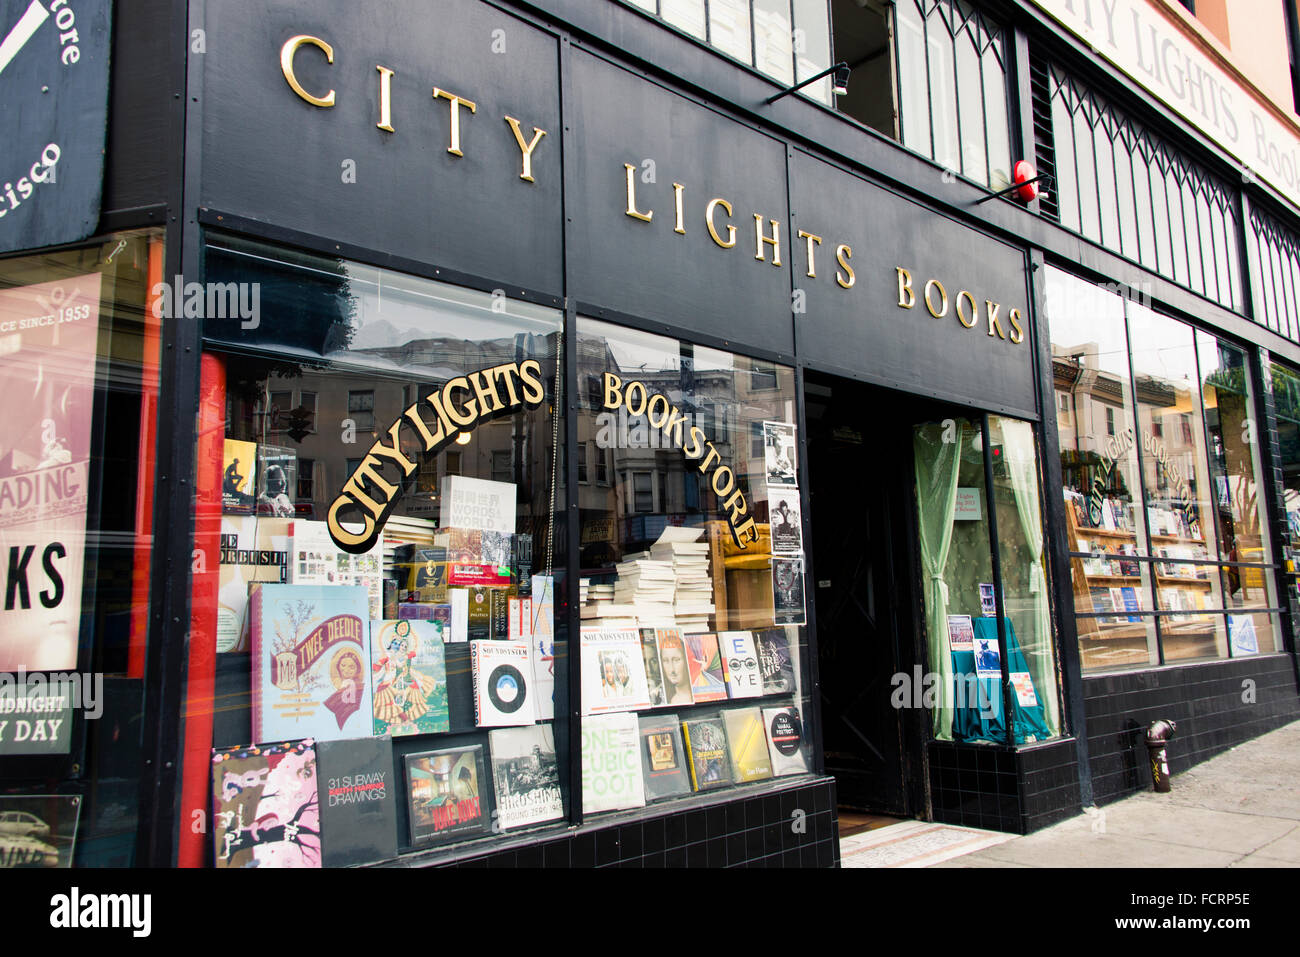 City Lights Bookstore, San Francisco, California - Stock Image